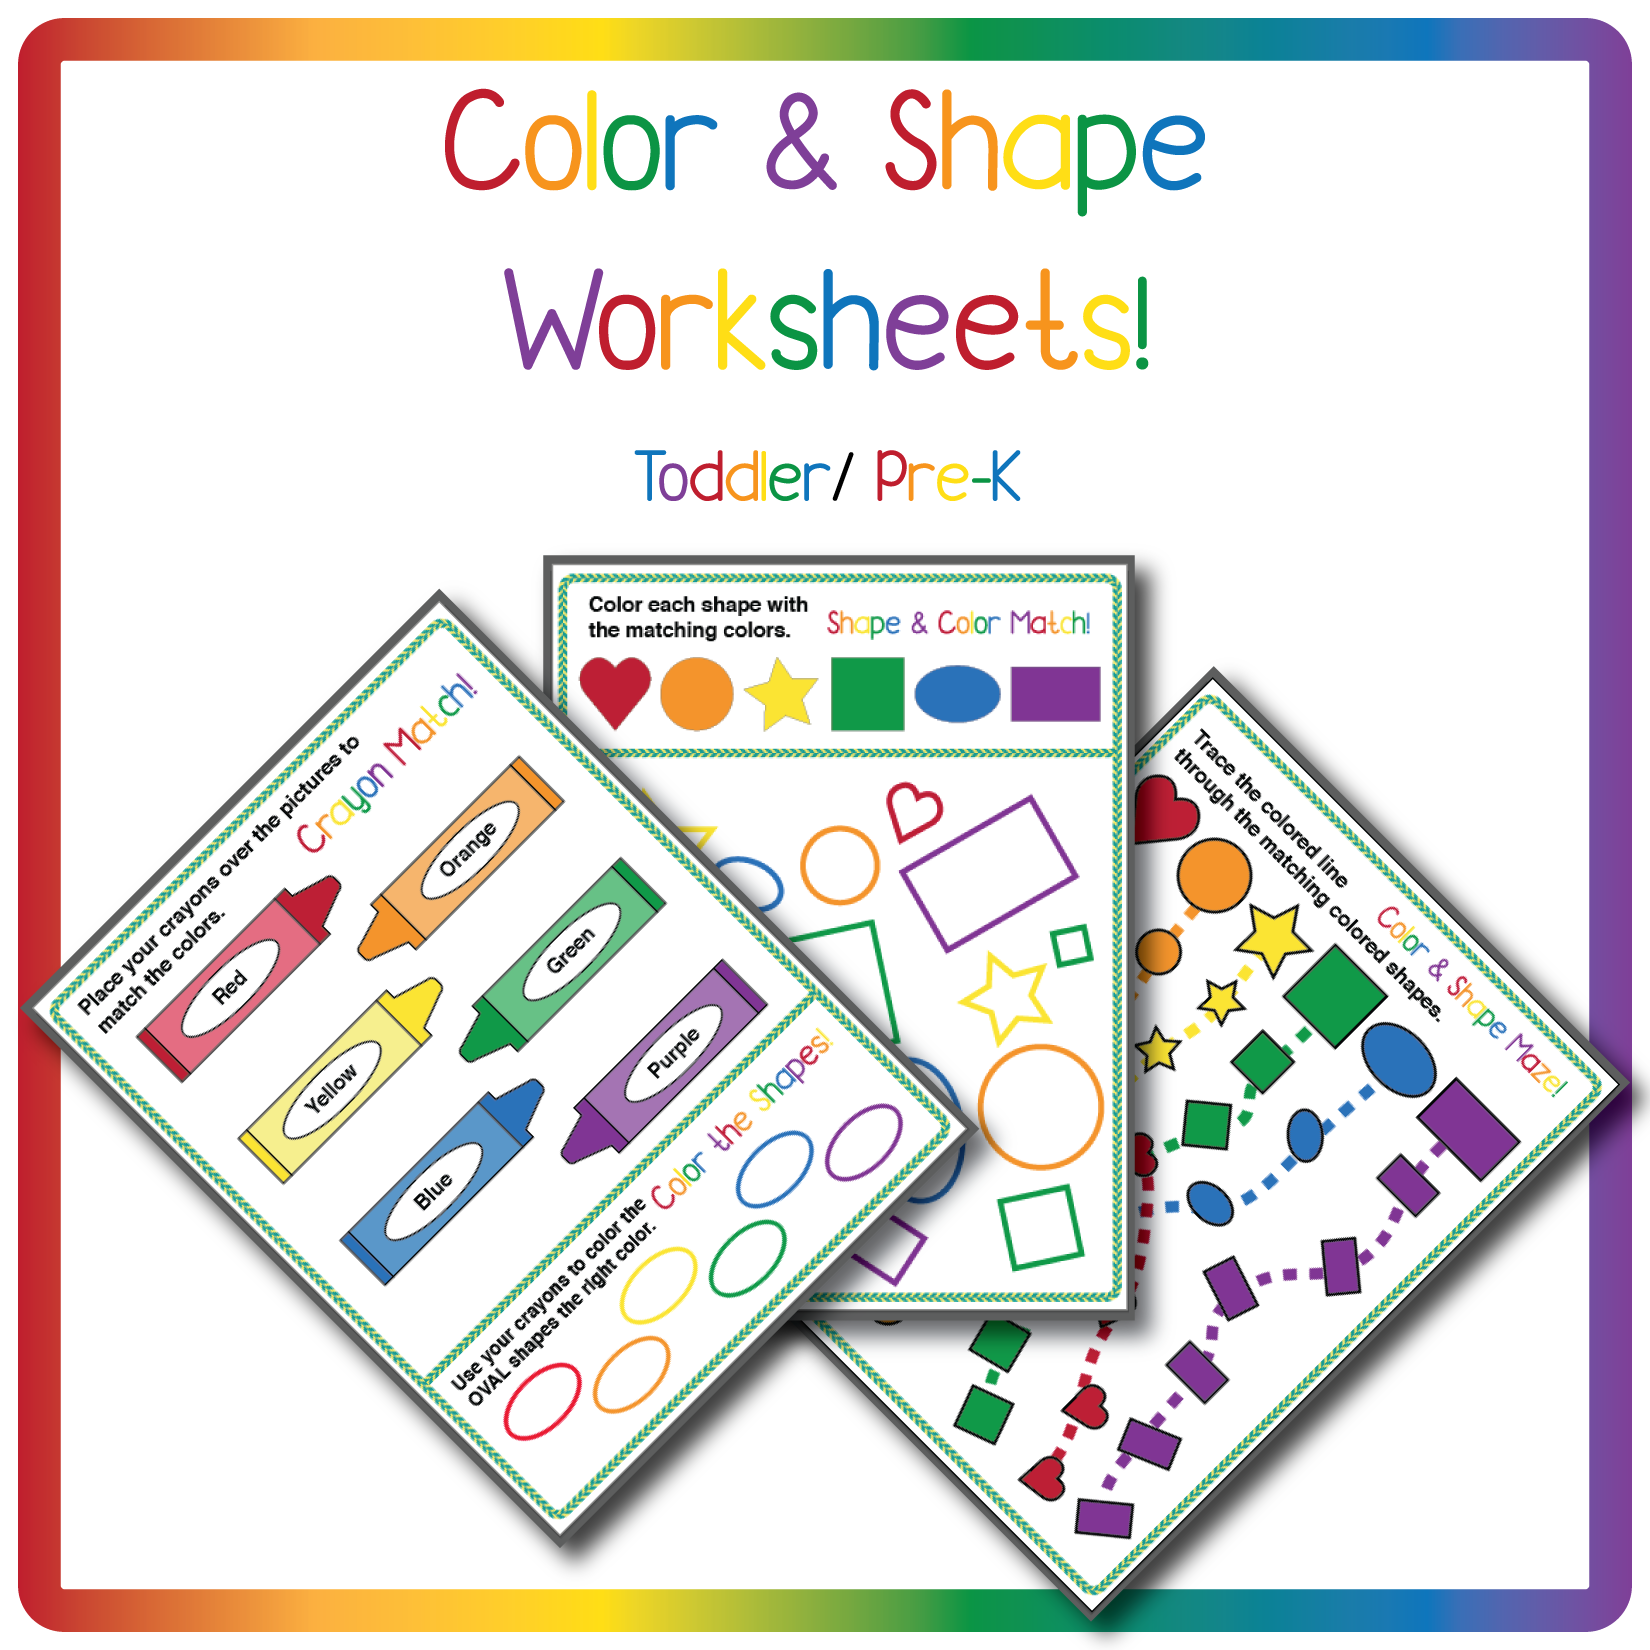 Color Amp Shape Worksheets For One 1 For Toddler And Pre K